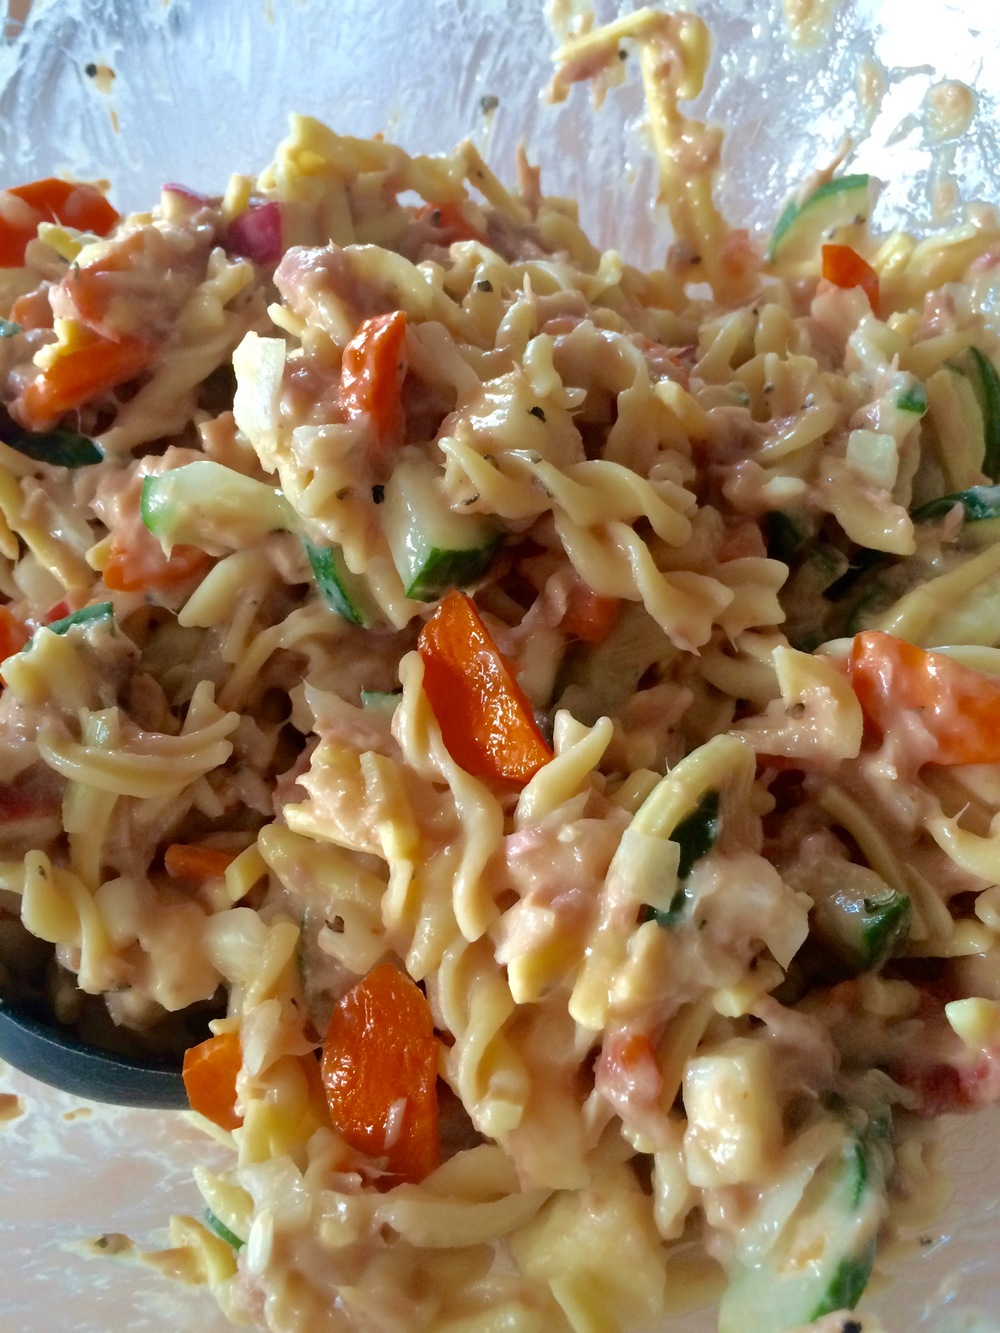 A close up of our Tuna Salad.